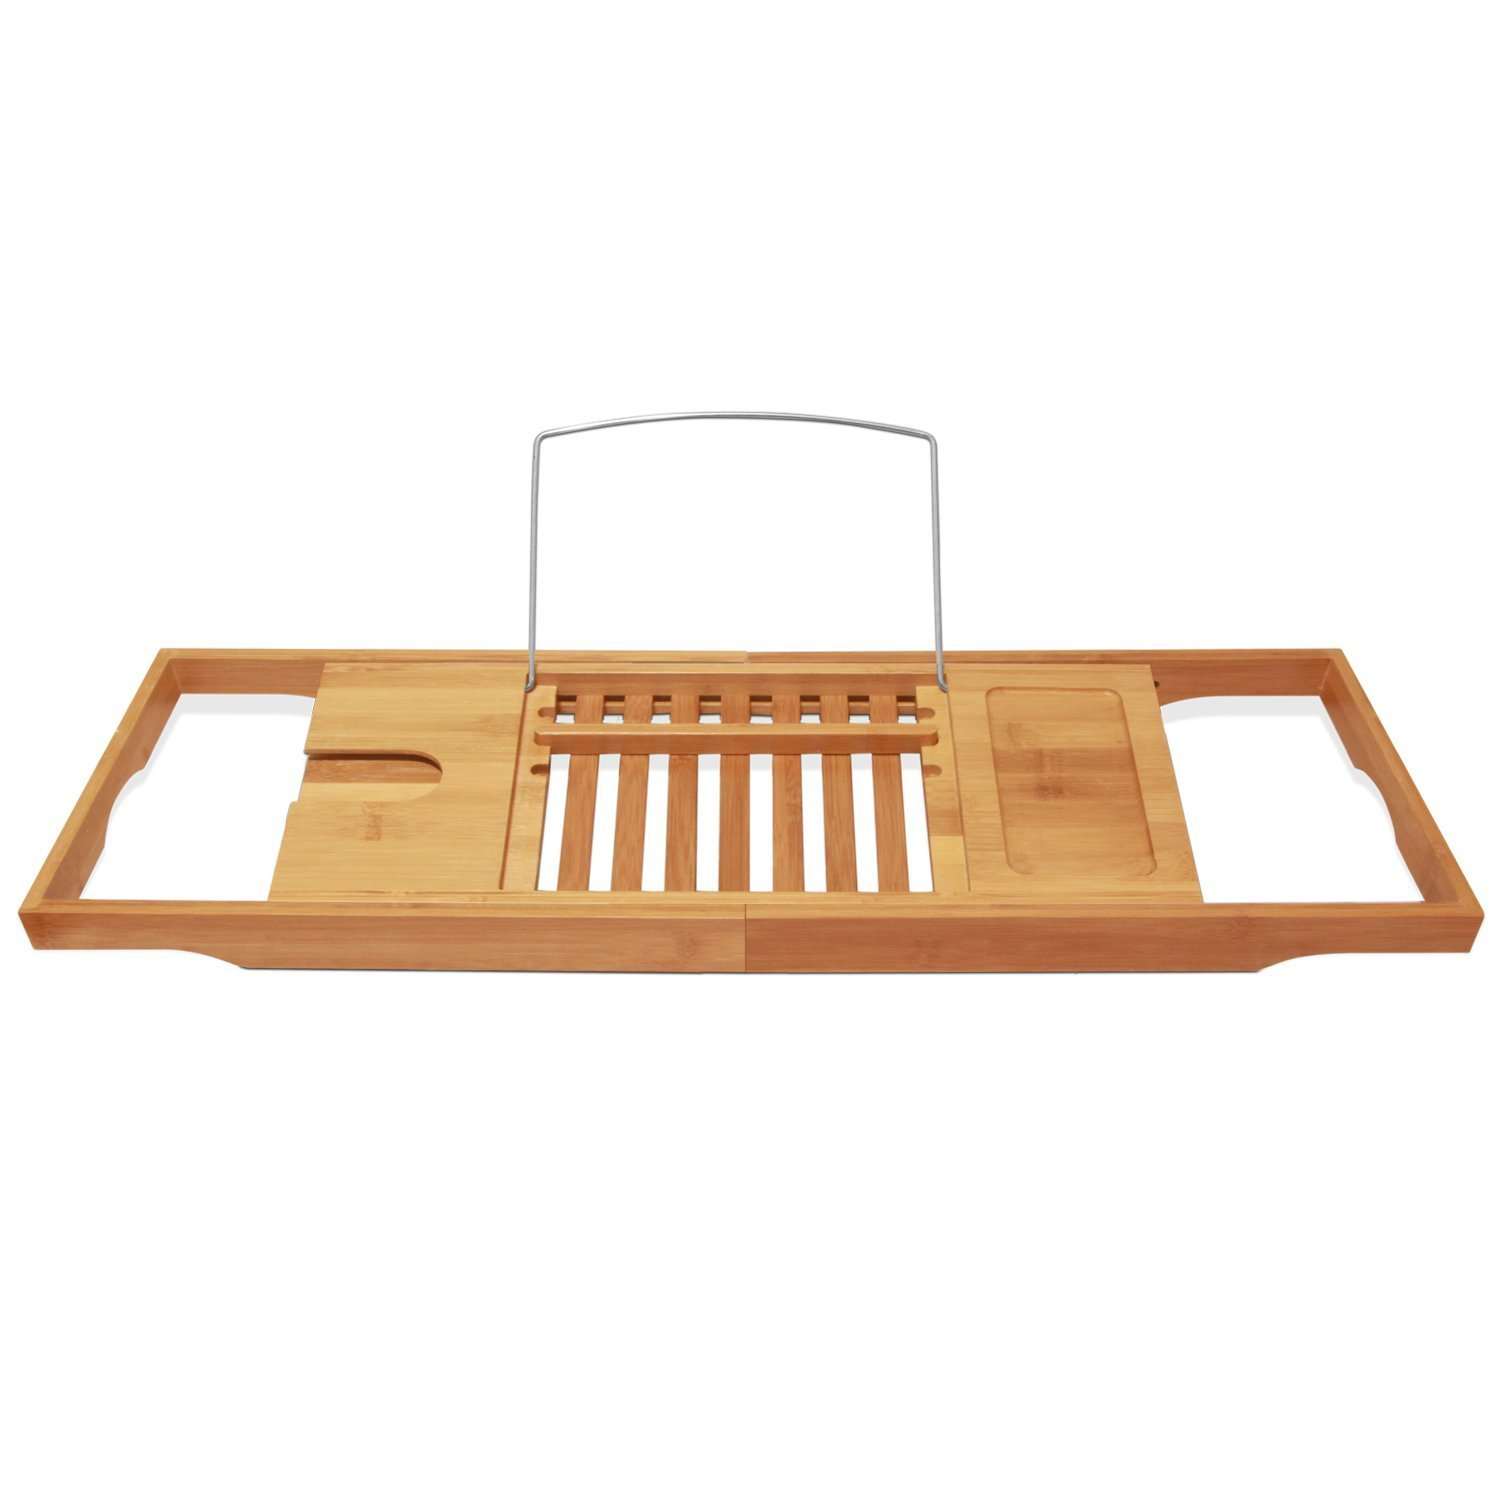 ToiletTree Products Bamboo Wooden Bathtub Caddy with Extending Sides and Adjustable Book Holder TTP-BTC-1